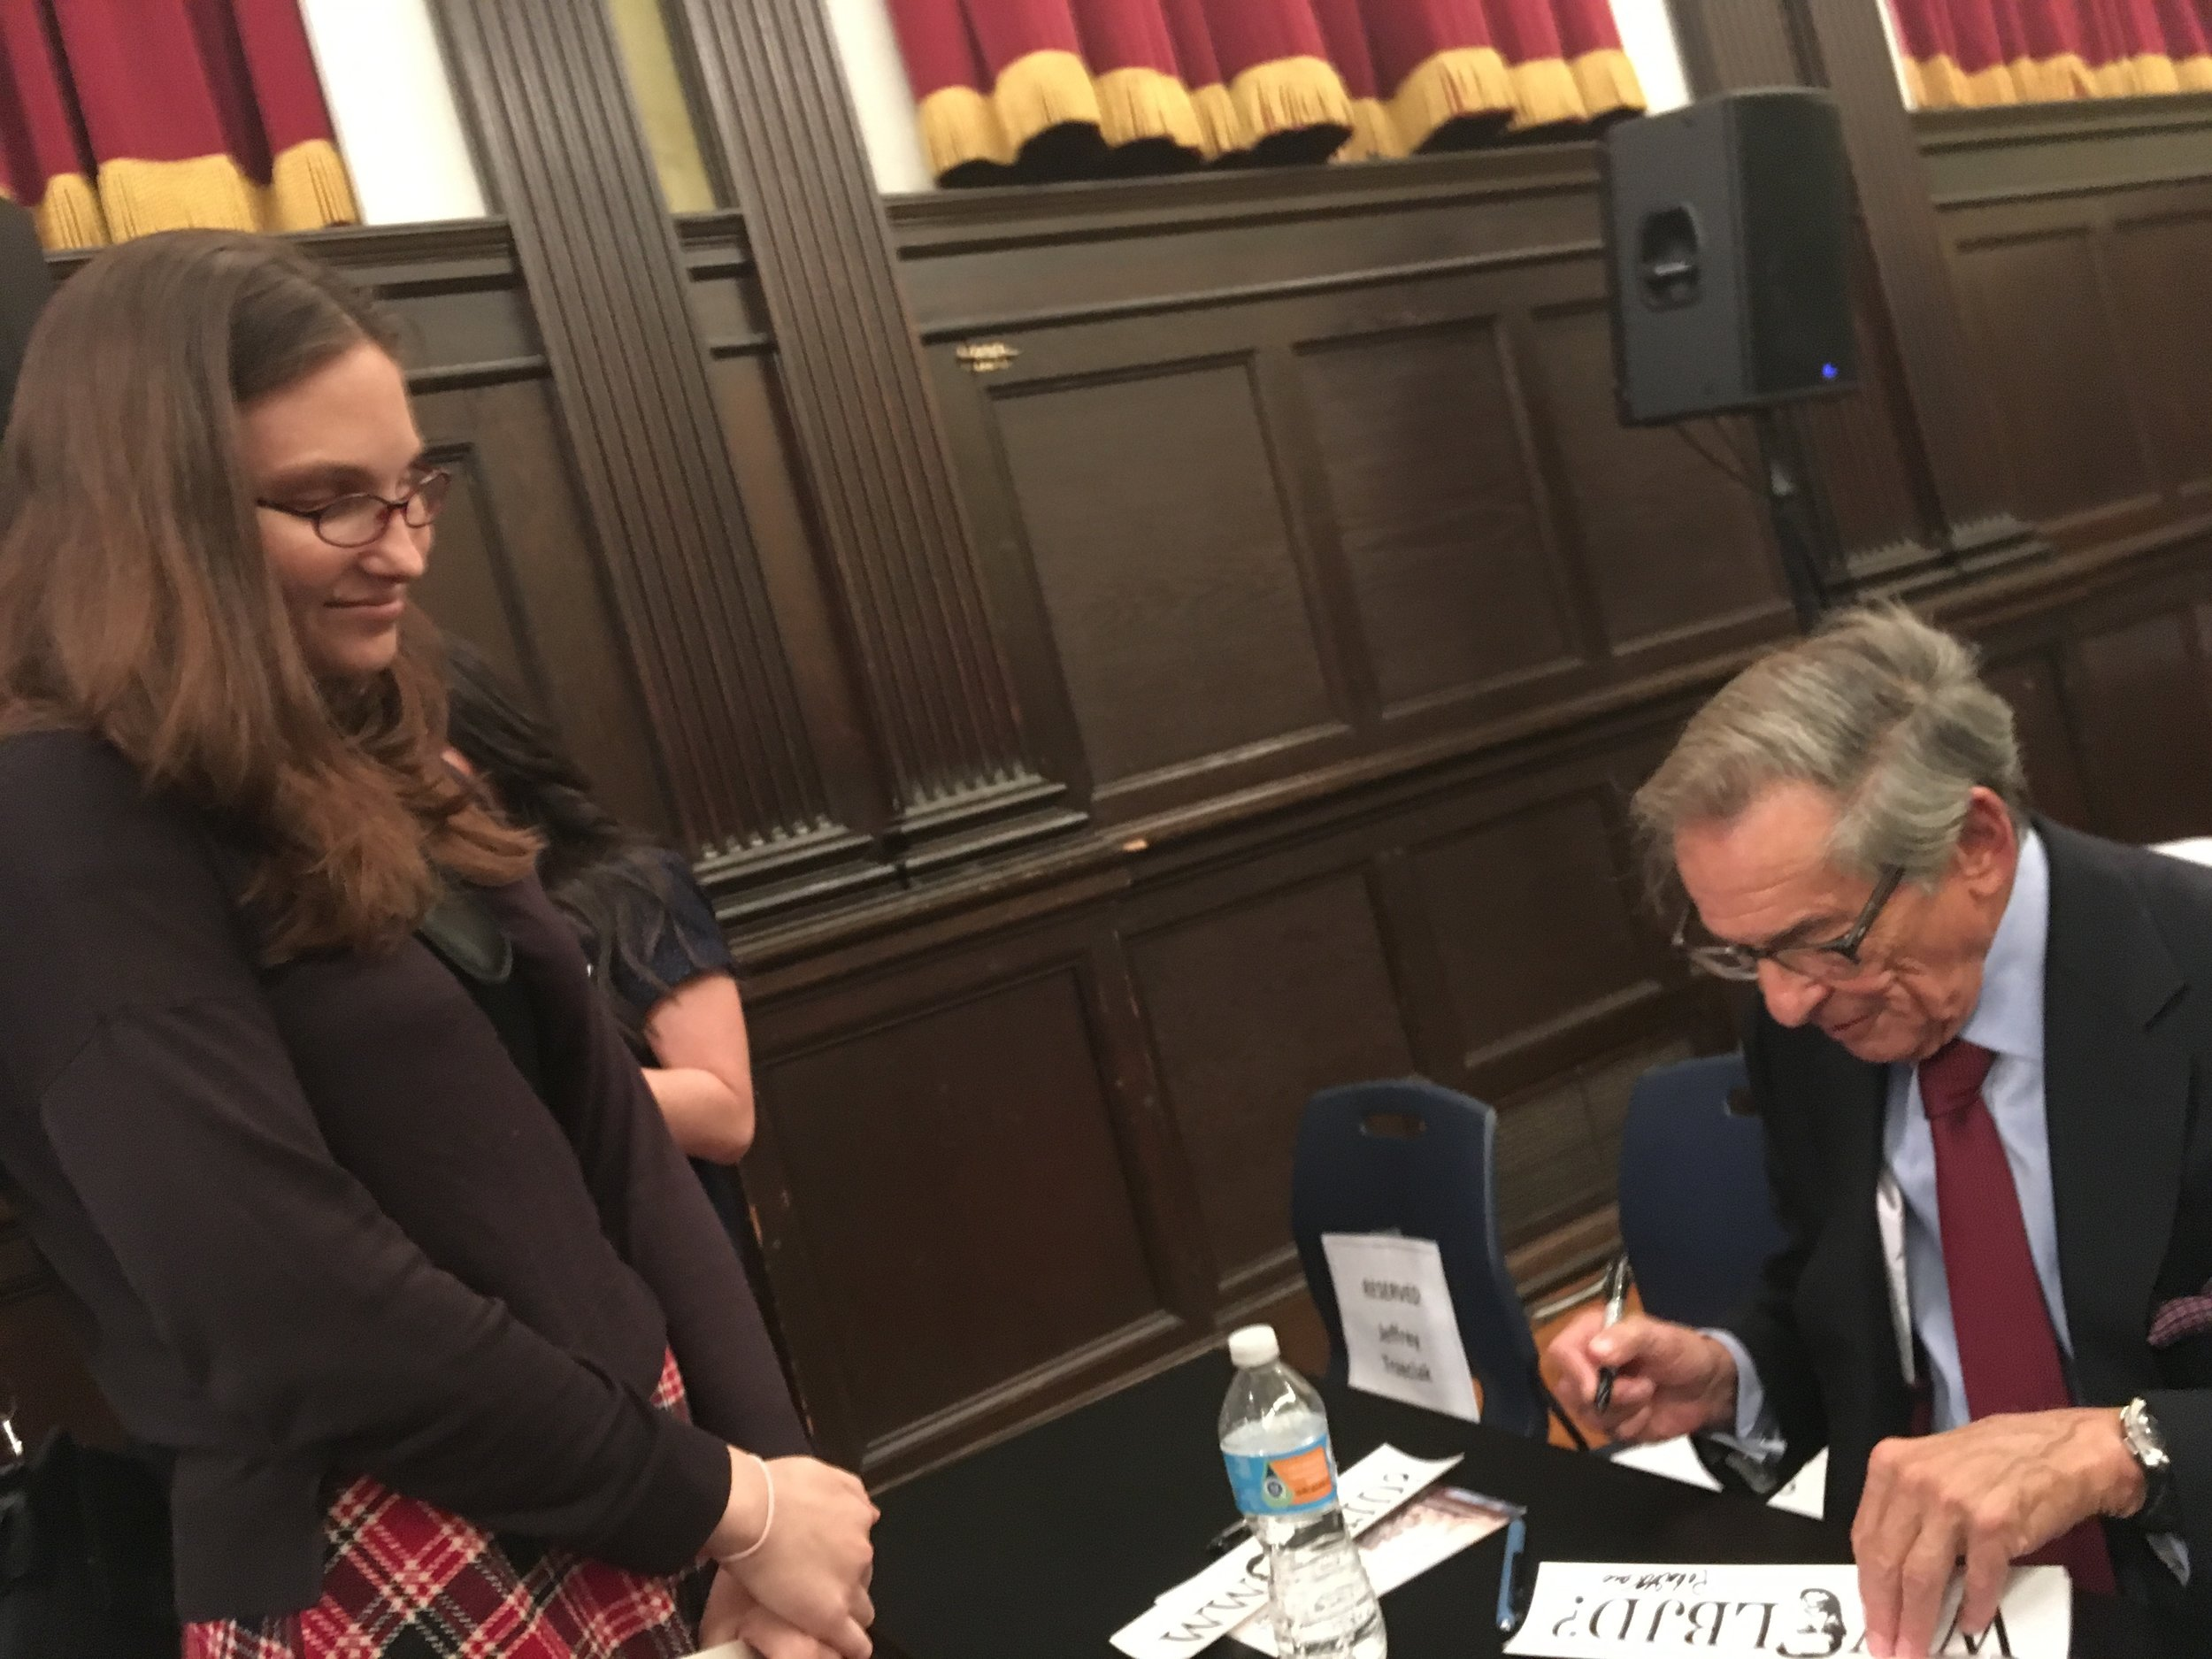 I look very shy and dopey in this photo but look how dapper Mr. Caro looks as he signs this bumper sticker!